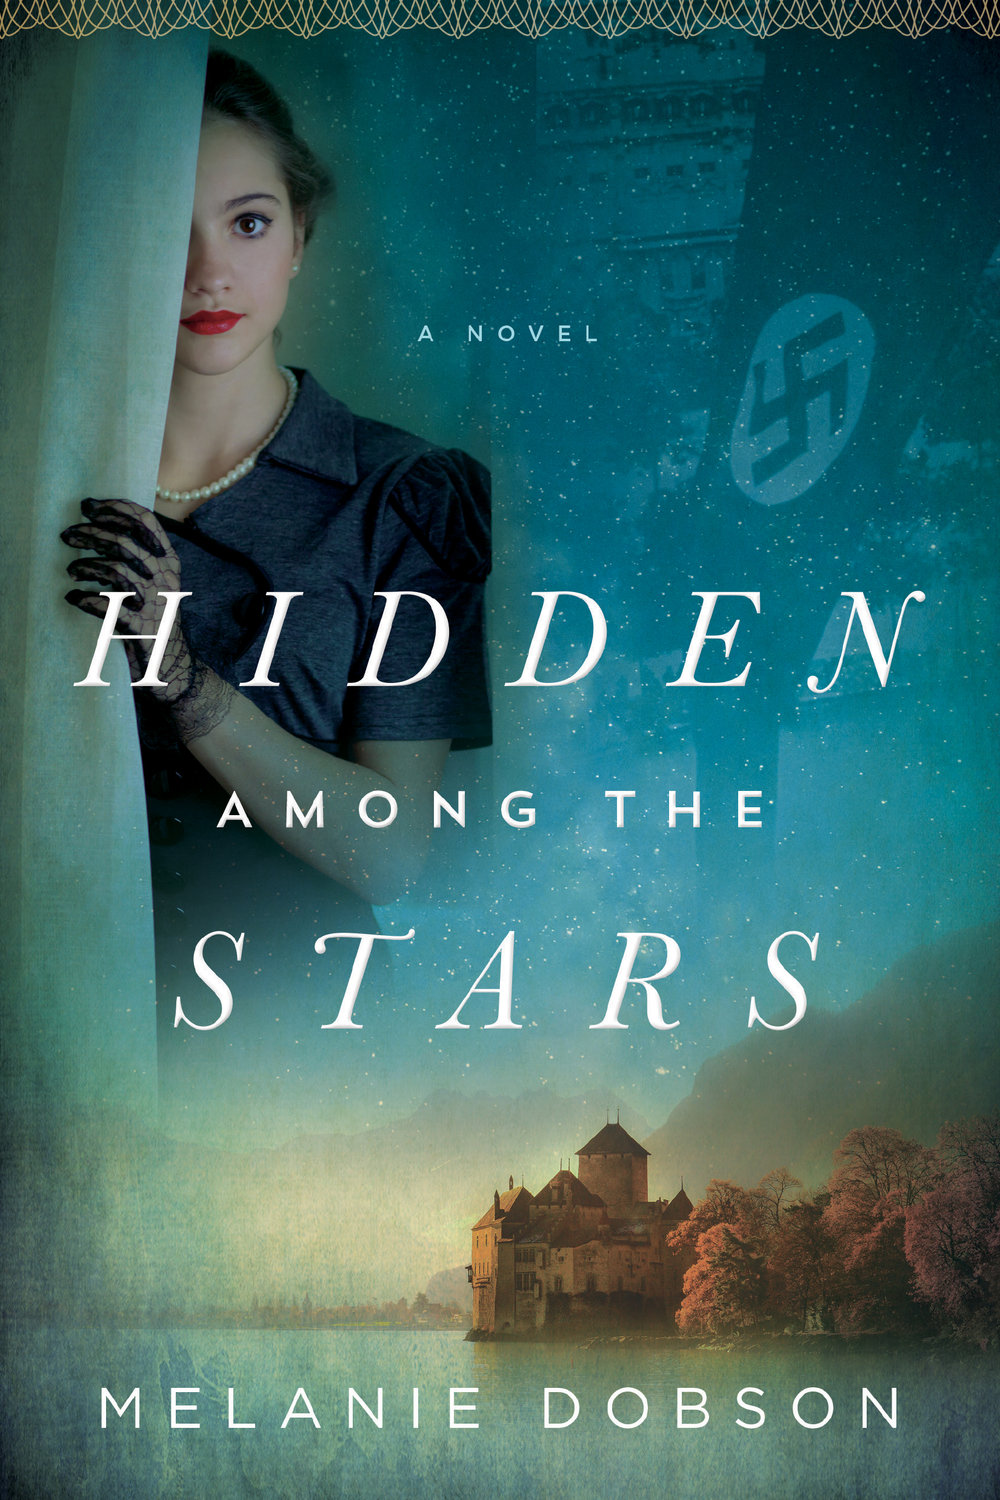 A ★★★★★ Book Review of Hidden Among the Stars, a Tyndale House Publishers historical fiction novel by Melanie Dobson